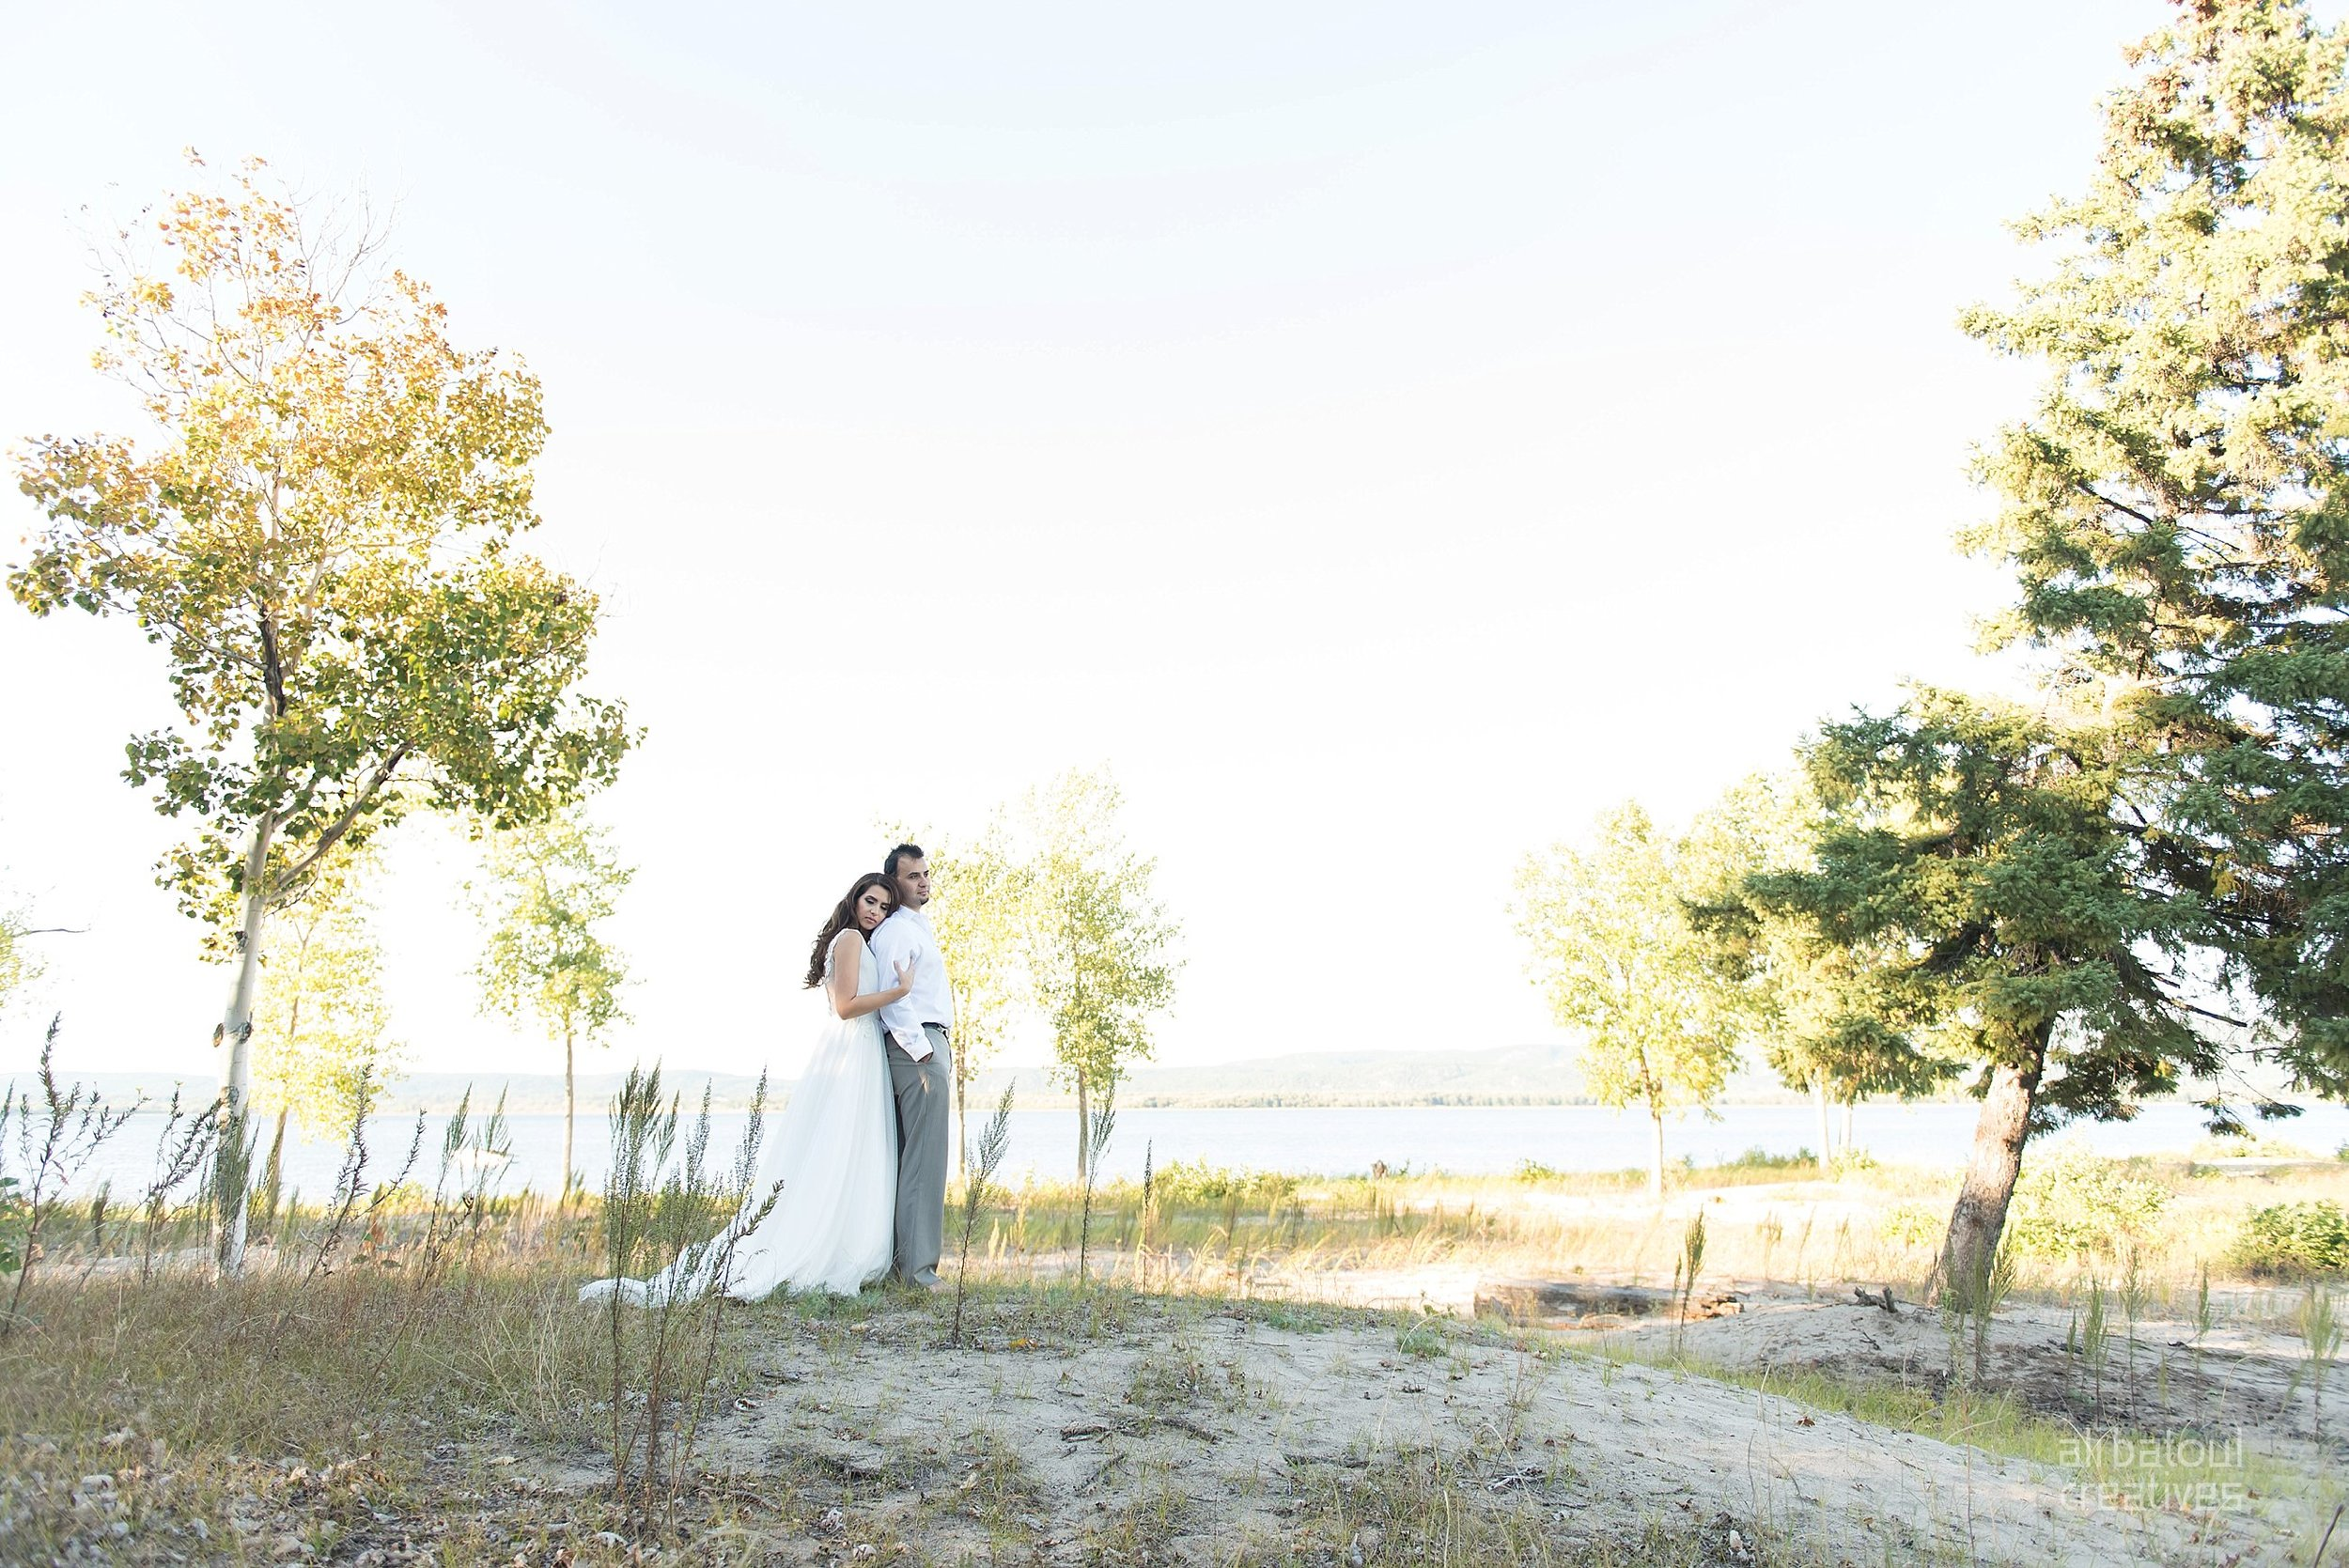 Alaa + Jad - Ottawa Beach Bridal Shoot (Ali Batoul Creatives)-58_Stomped.jpg